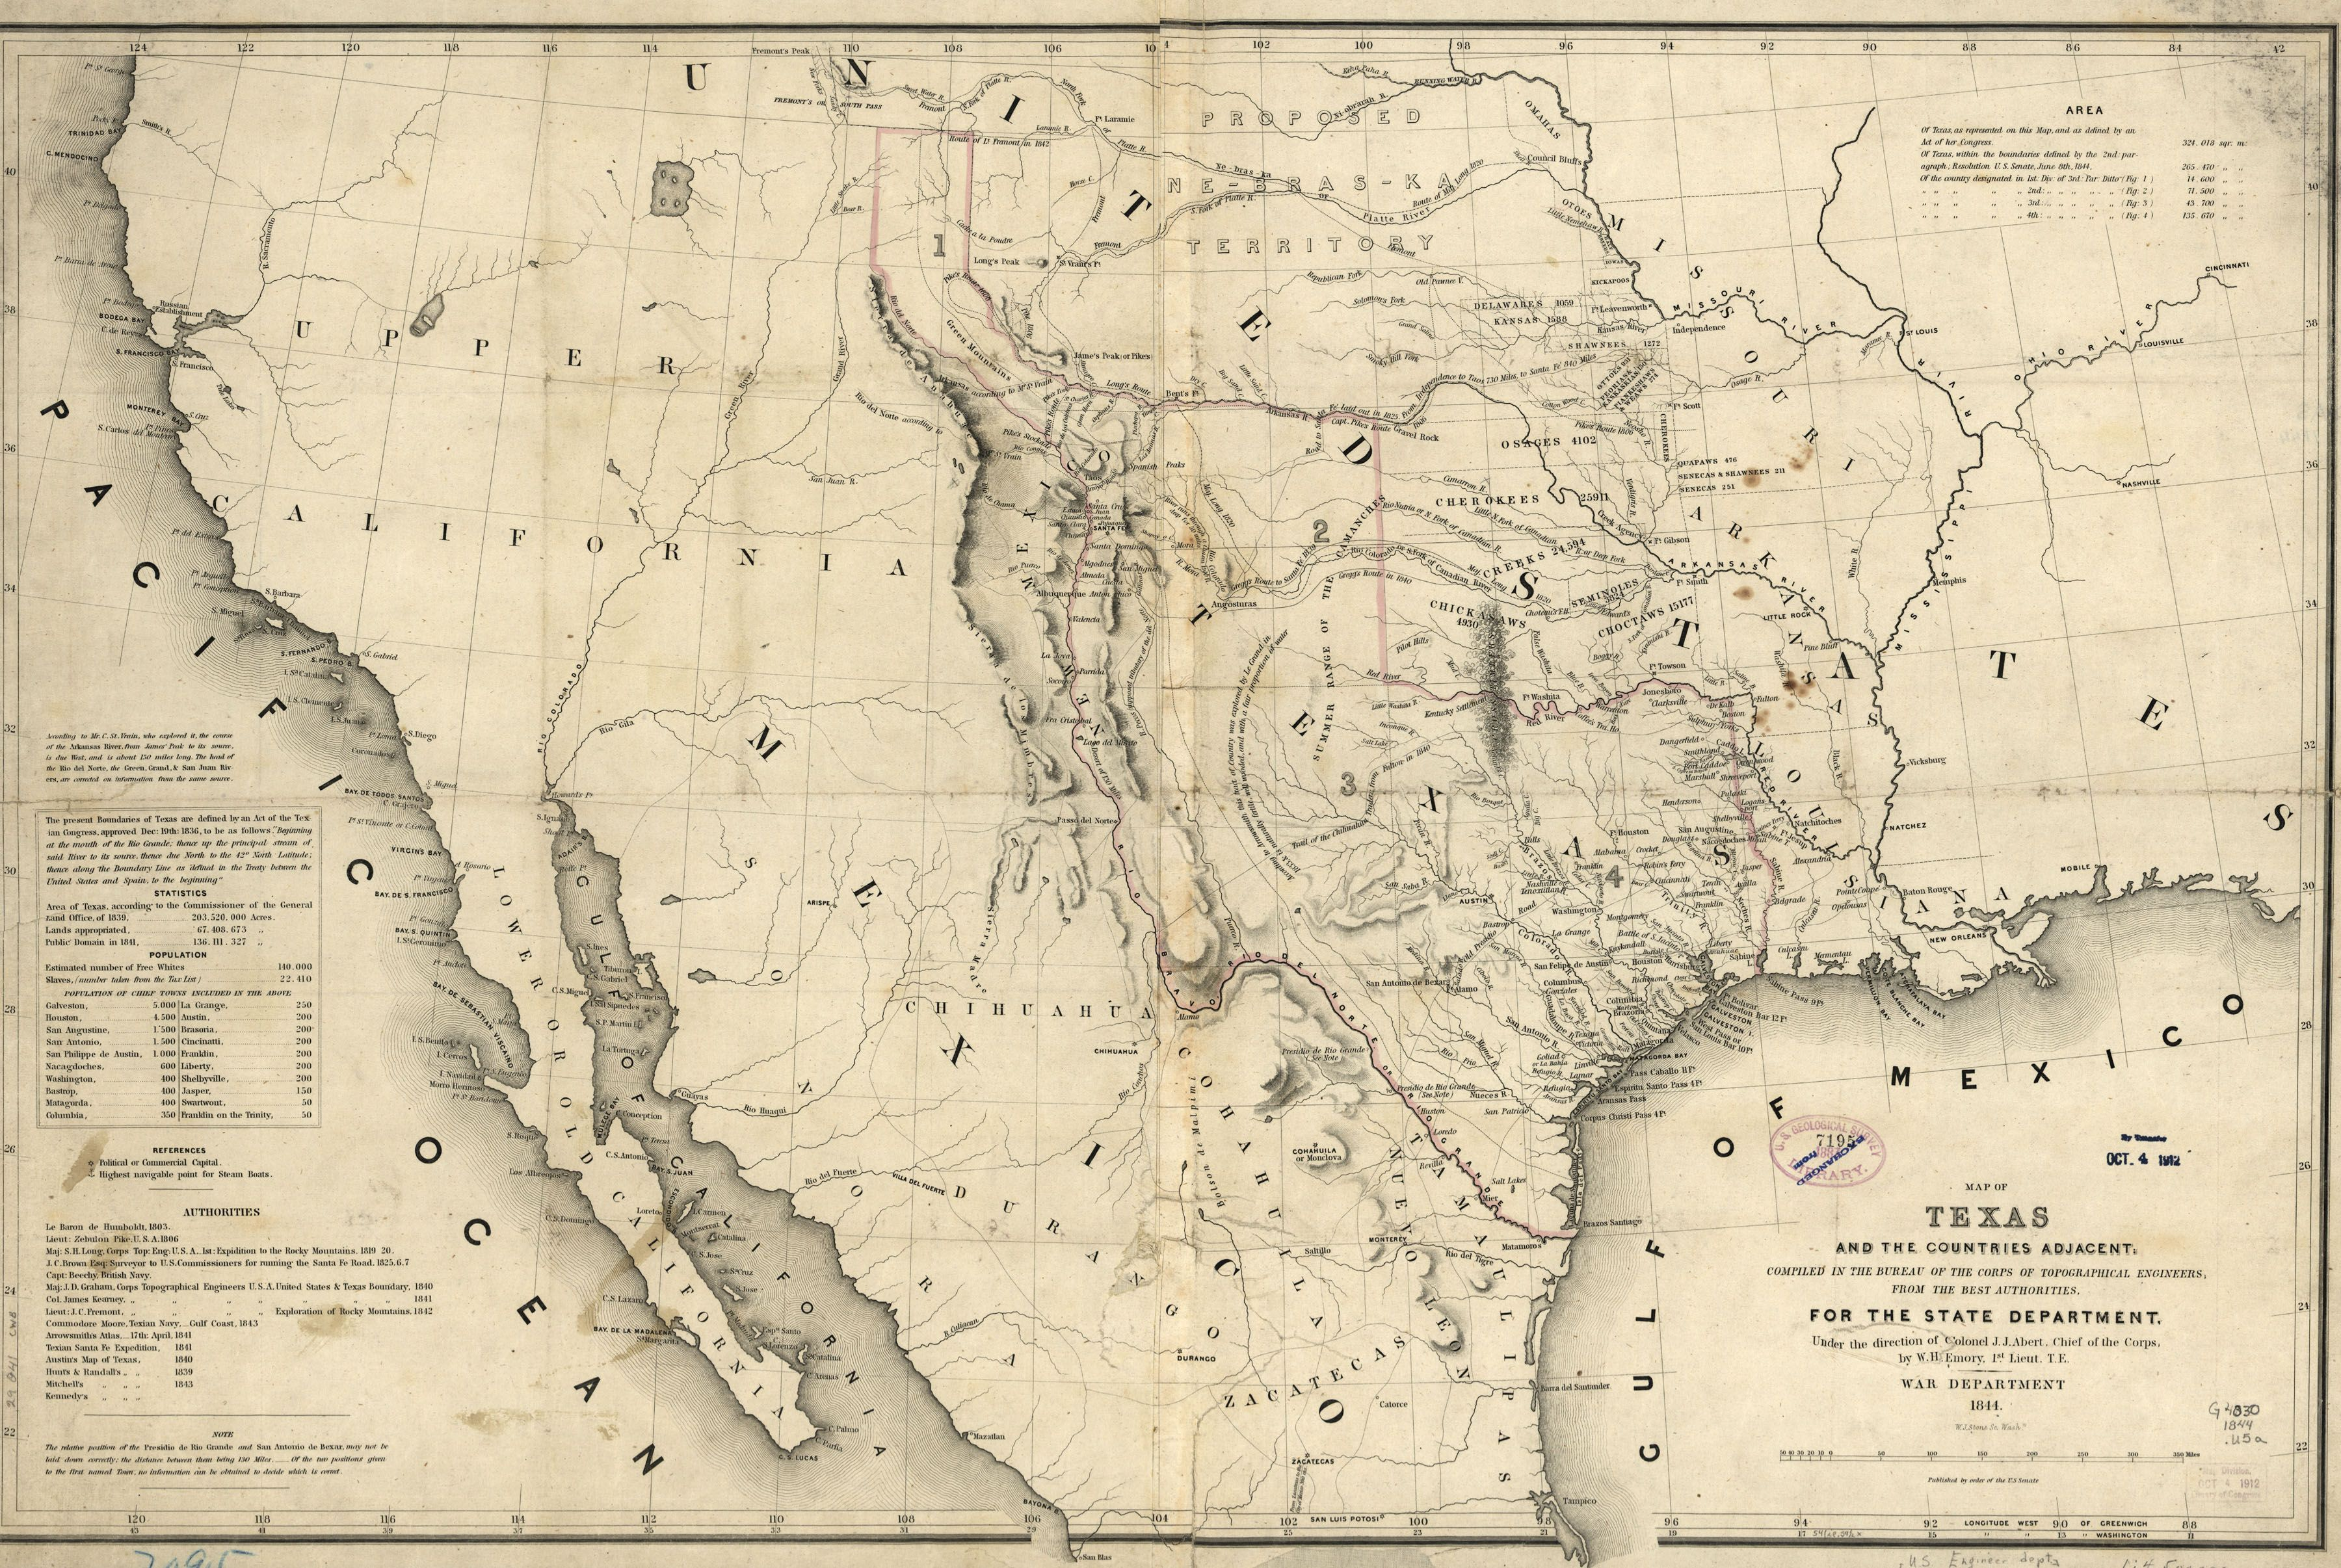 Map Of Texas Mexico.1844 Us War Department Map Of Texas And Surrounding Areas Historic